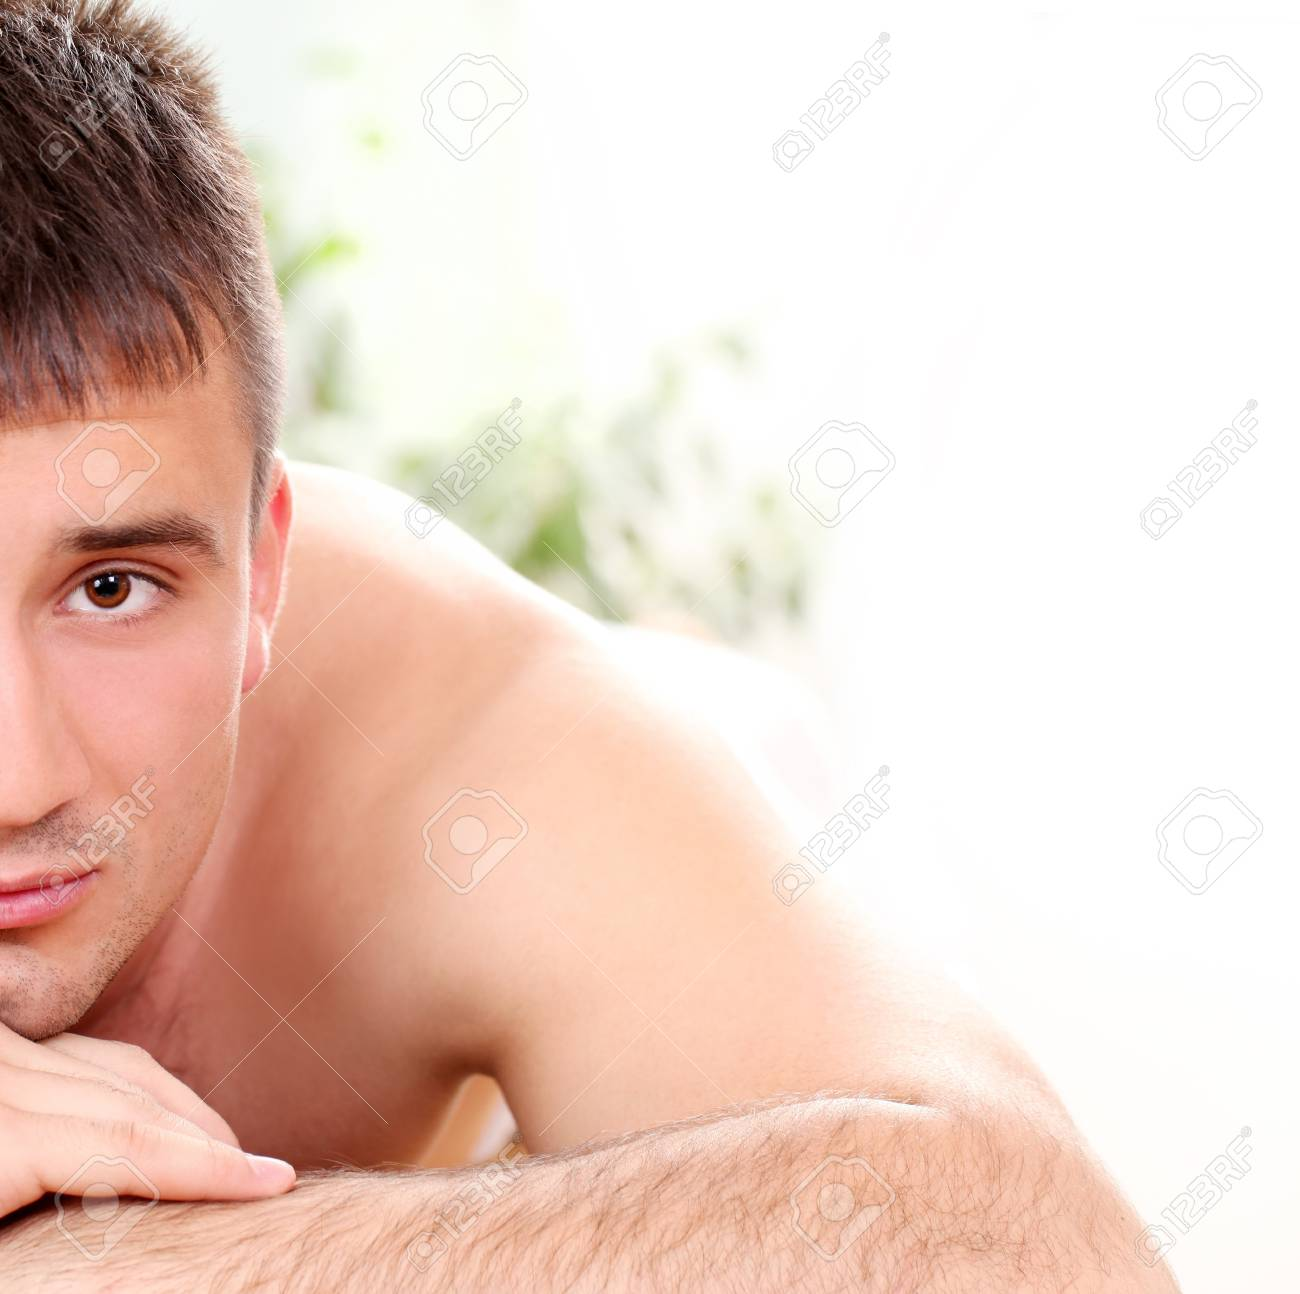 Handsome man relaxing and enjoying procedure of massage Stock Photo - 14362938